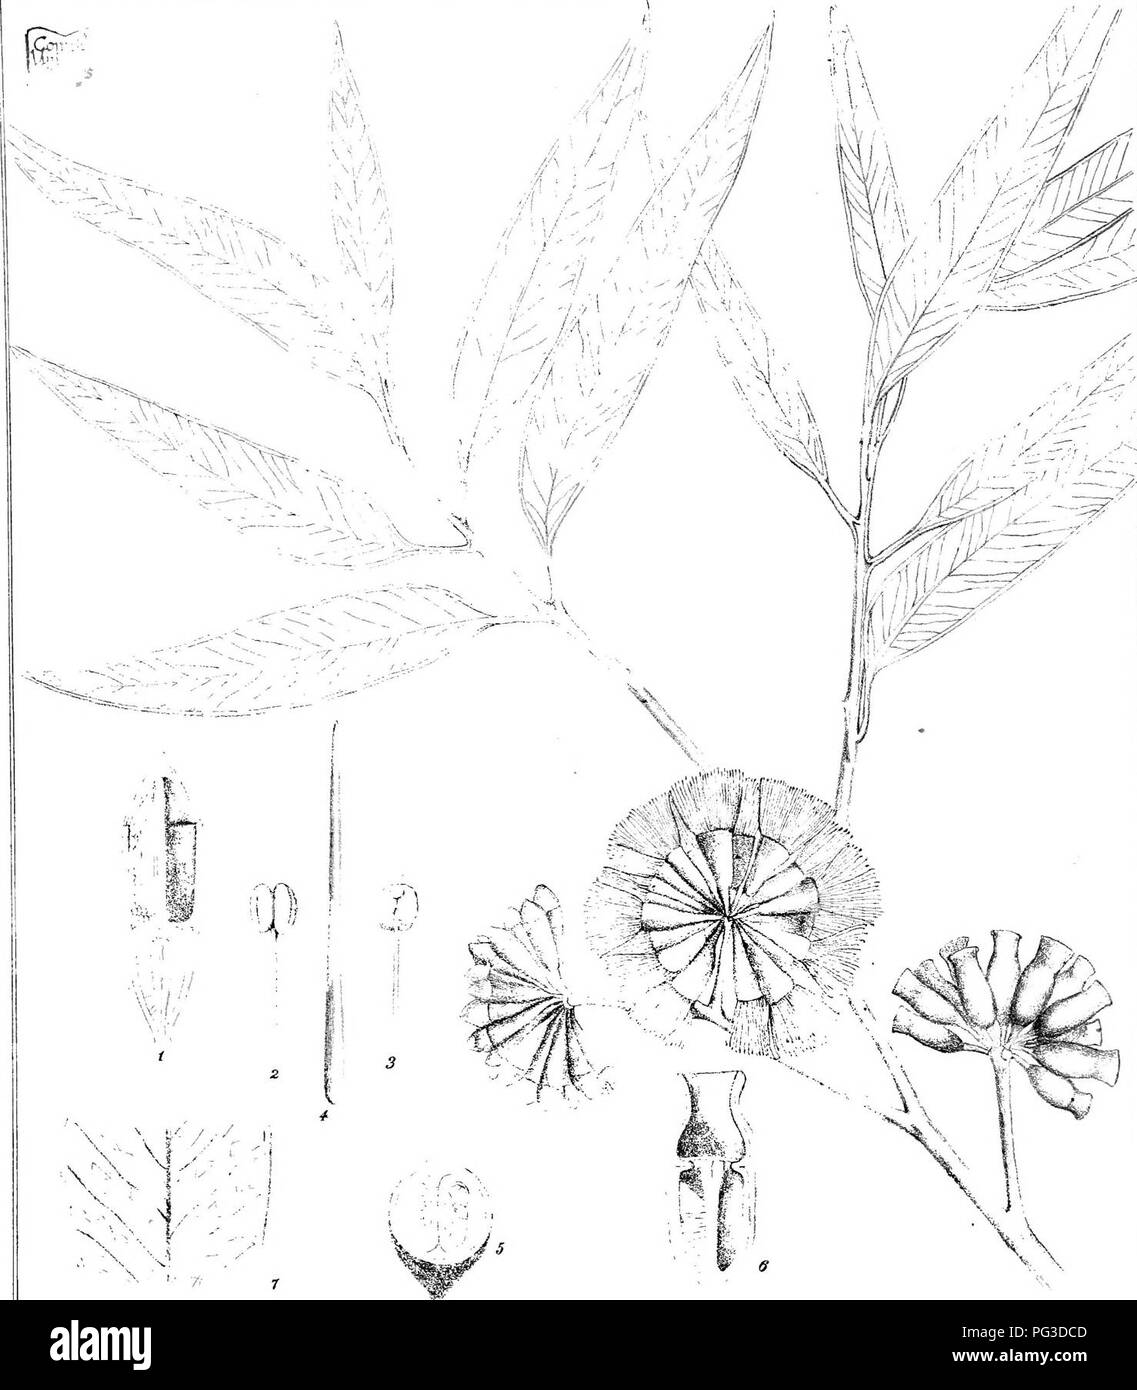 """. Eucalyptographia. A descriptive atlas of the eucalypts of Australia and the adjoining islands;. Eucalyptus; Botany. RAiTstsn del. C.Ti-cedei 8, C» IM. F, T M. direxib. lilEtgHlj^t^l^ ]o&(o)(Blig^